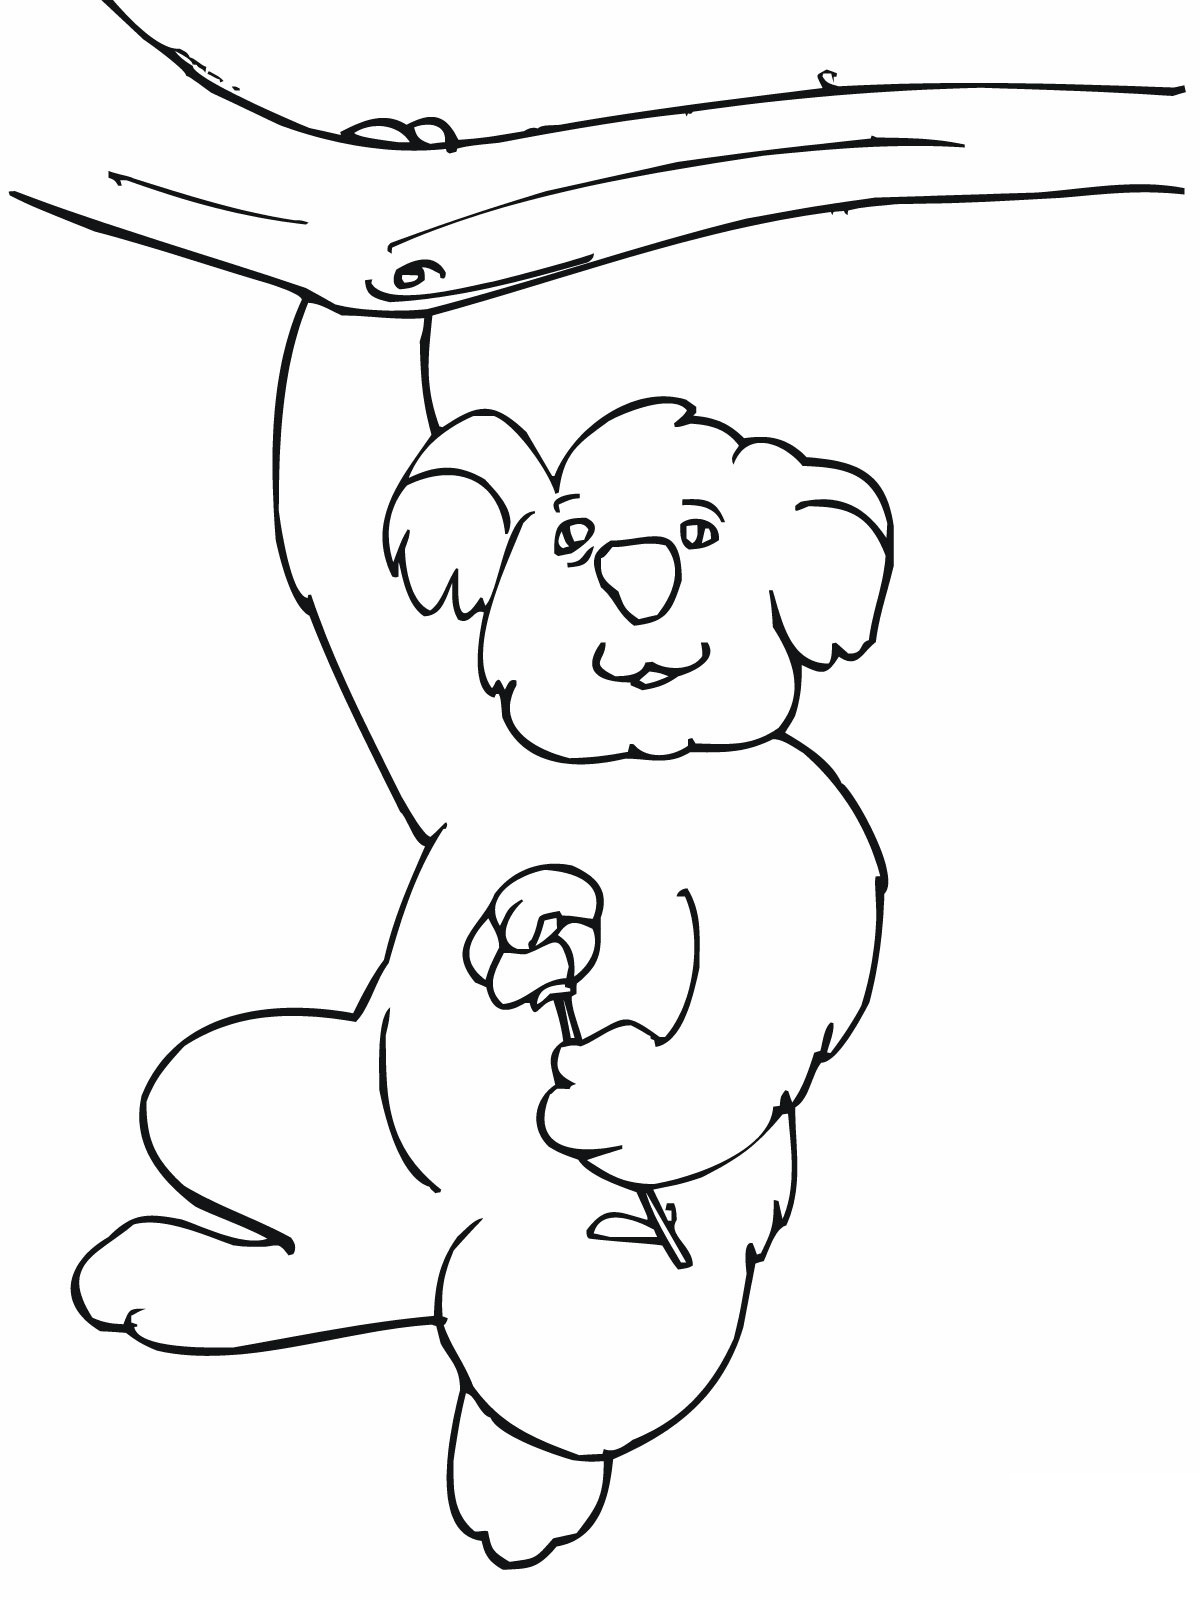 It's just a graphic of Rare Koala Bears Coloring Pages